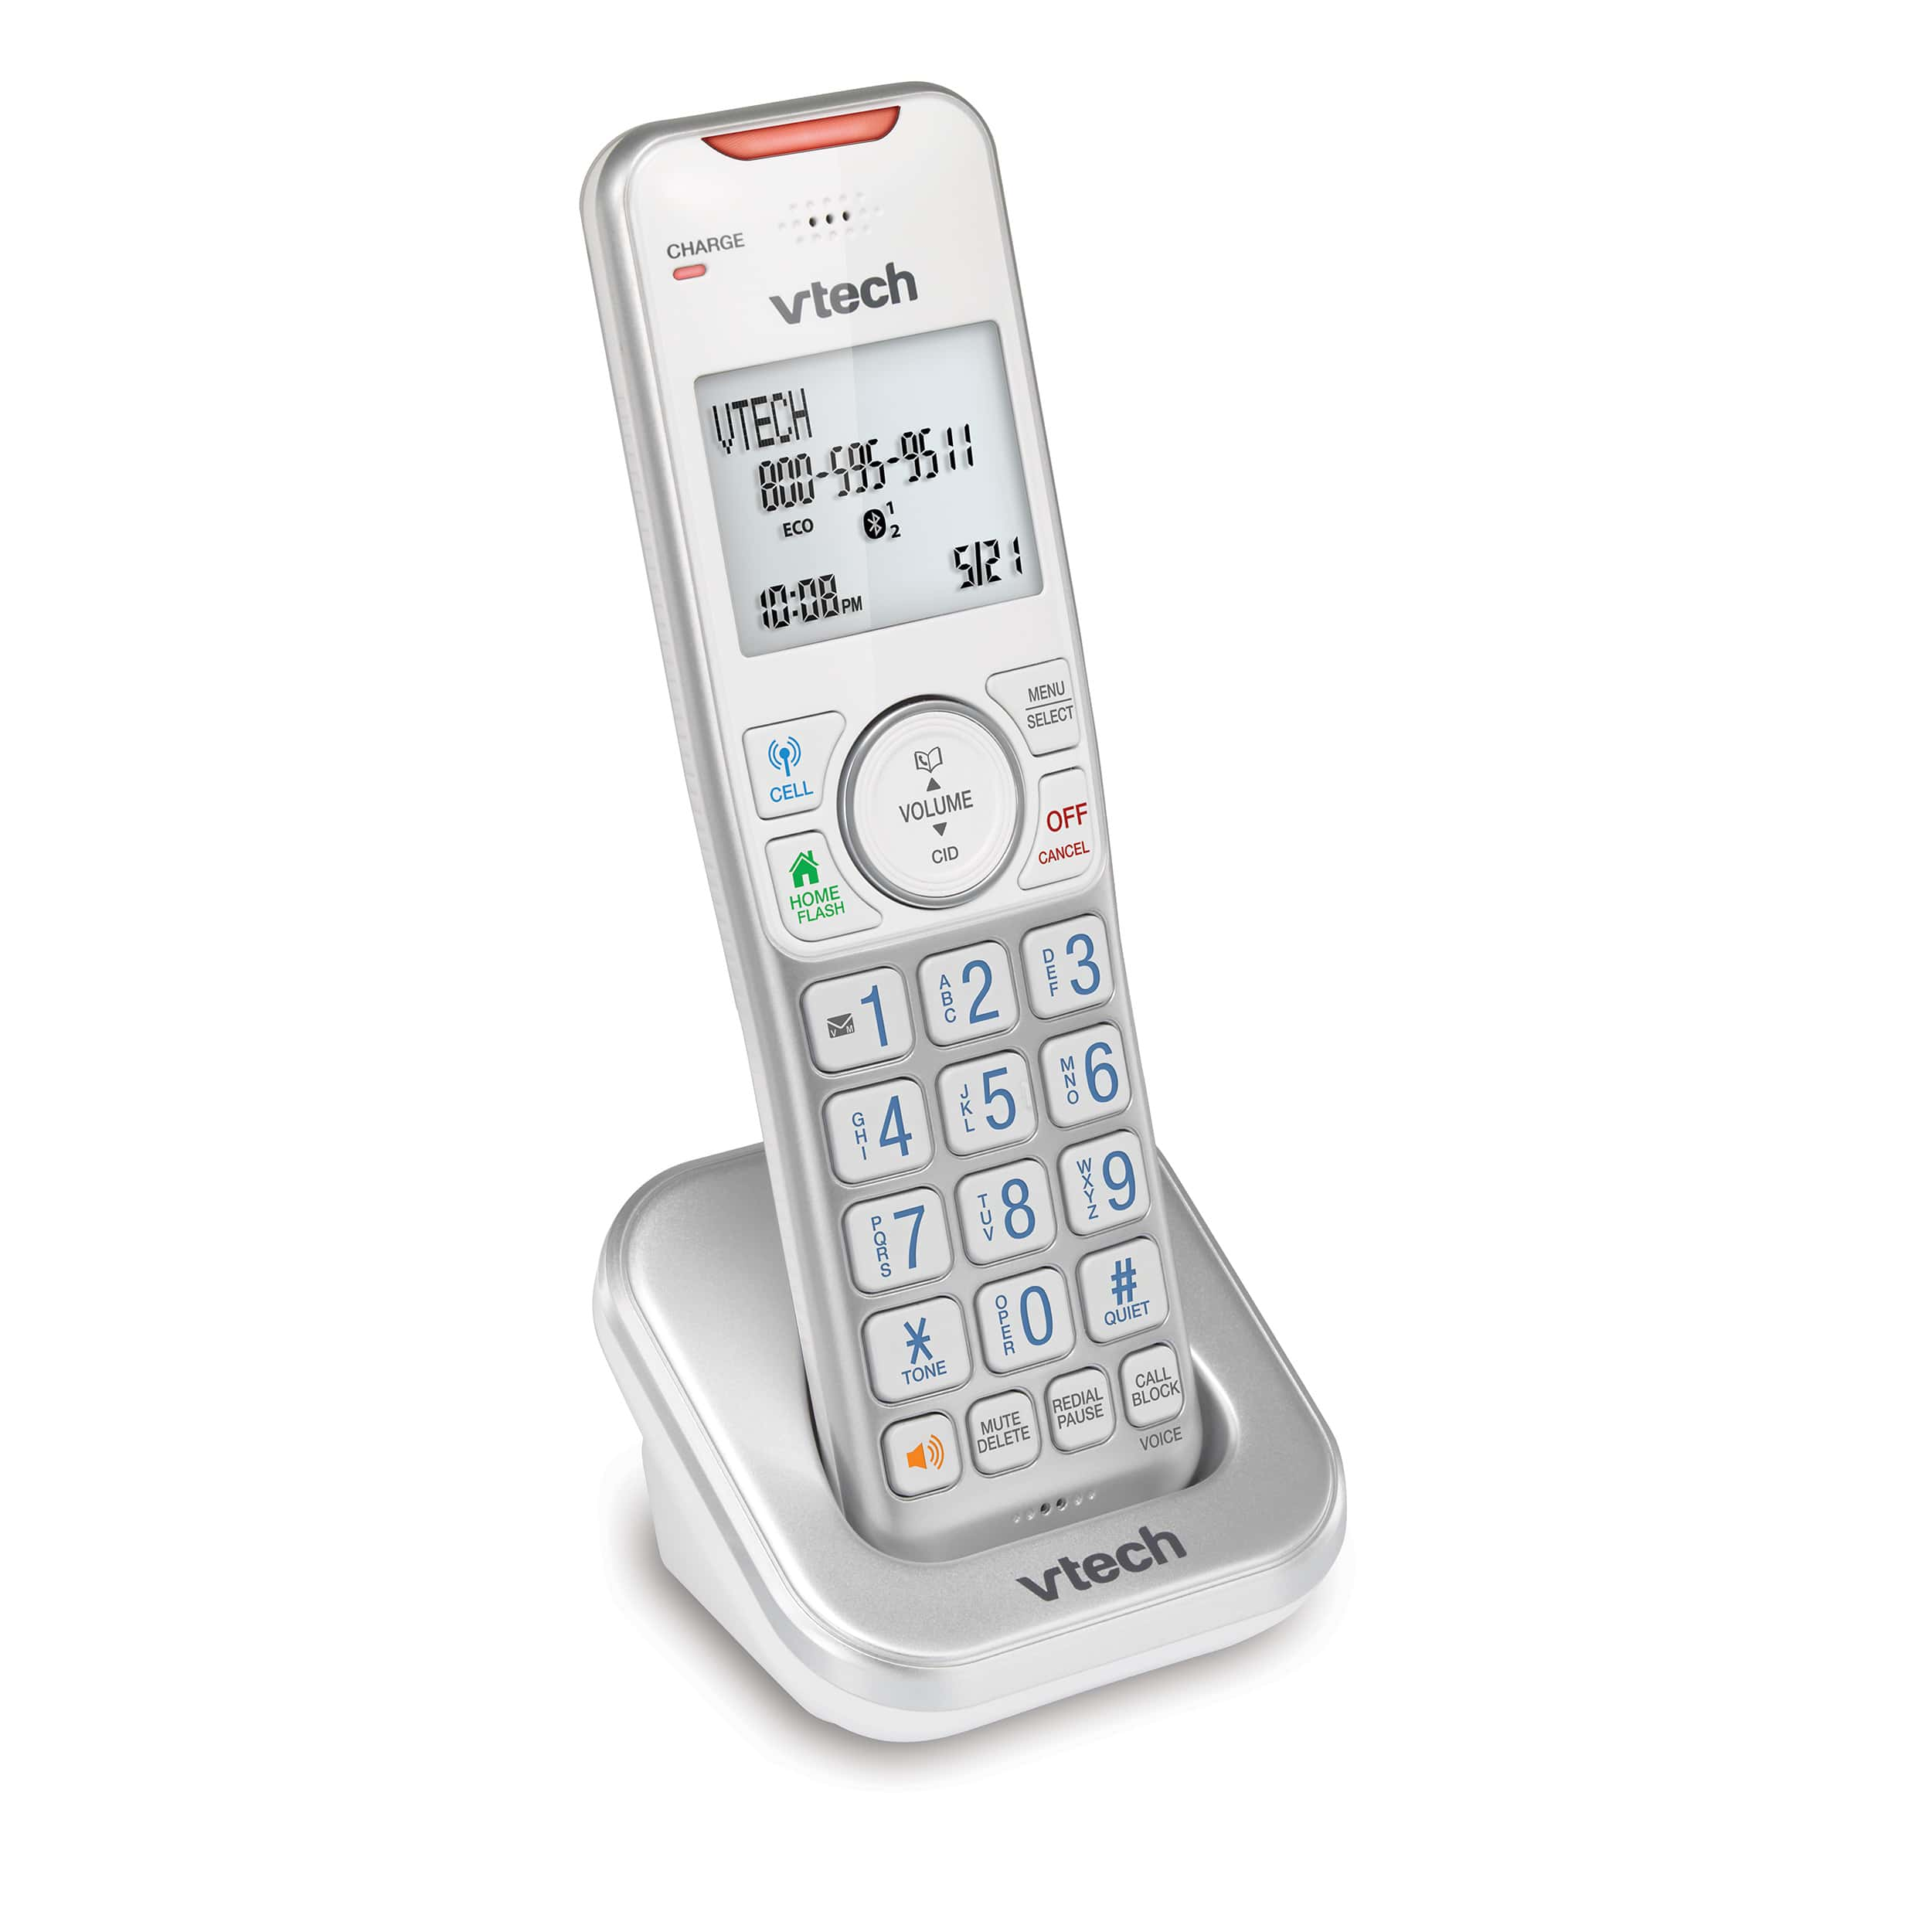 Accessory Handset with Bluetooth Connect to Cell and Smart Call Blocker (Silver & White)